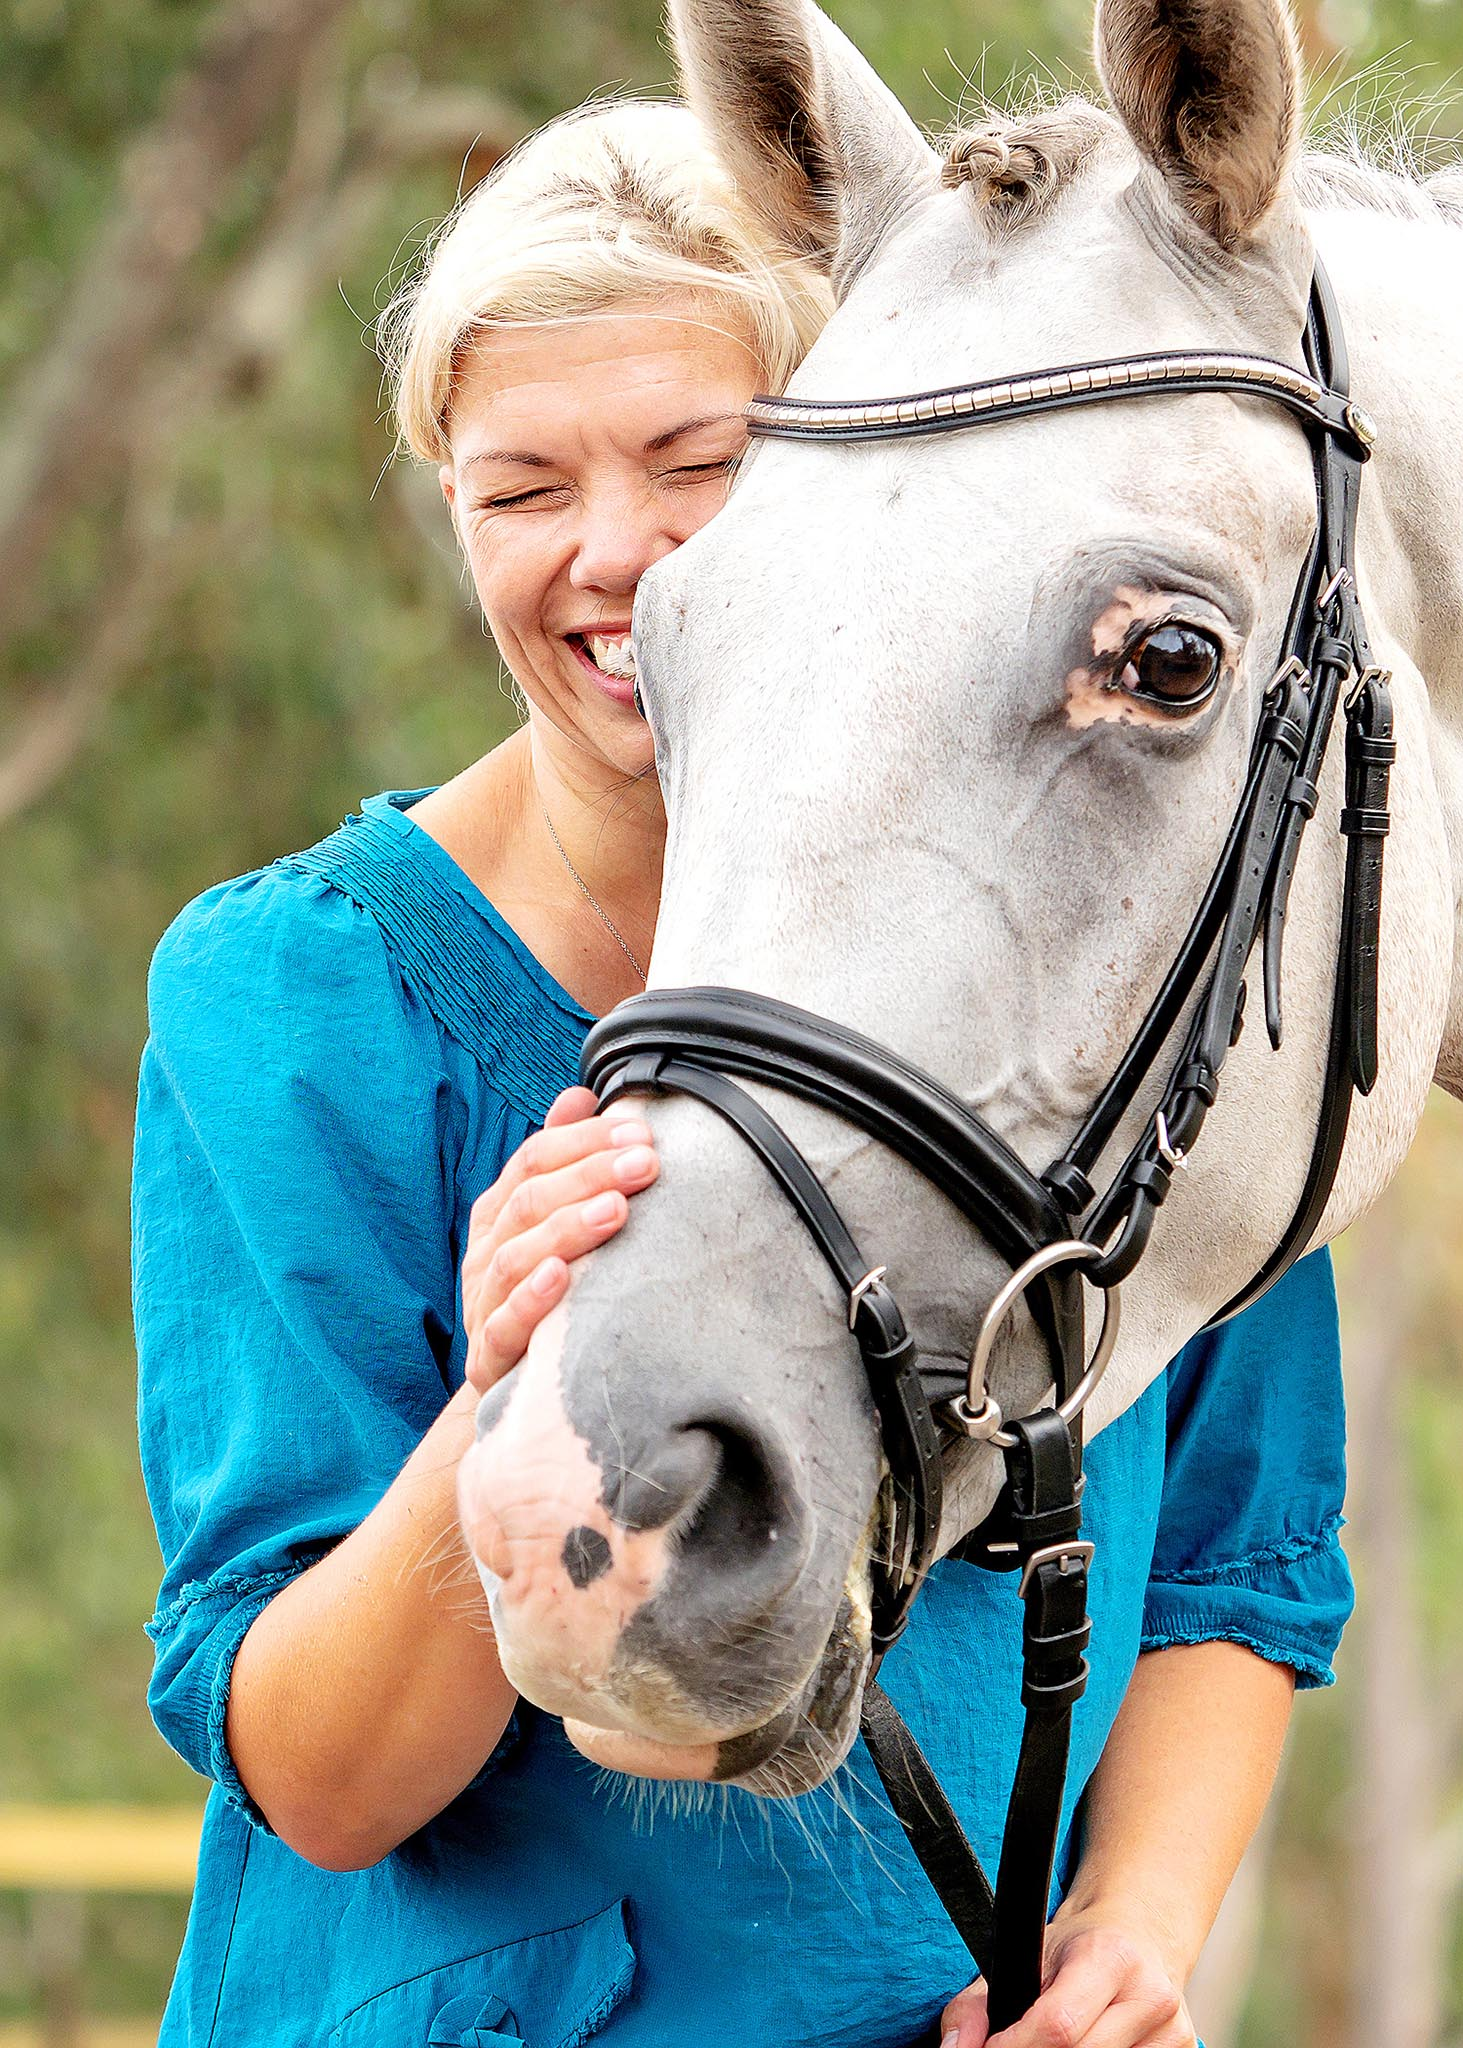 brisbane-photographer-horse-rider-portraits.jpg